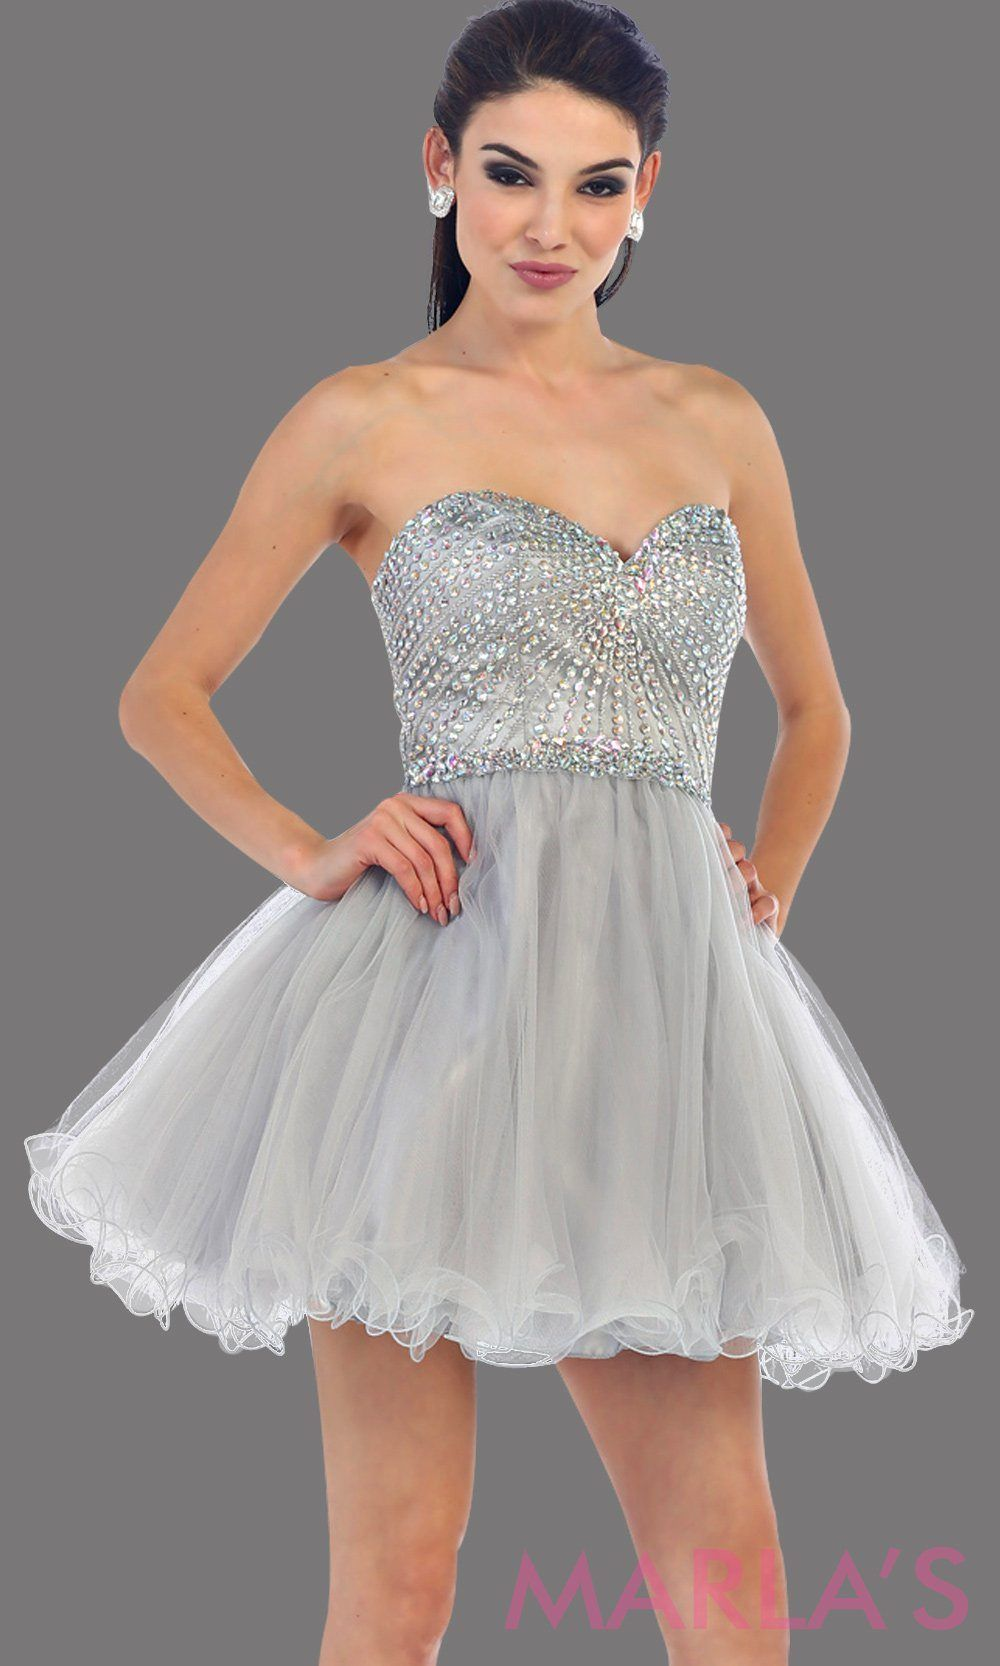 70d46522bee Short puffy gray strapless dress with a beaded bodice. It has a corset  bodice with tone on tone beading. This is perfect for grade 8 graduation